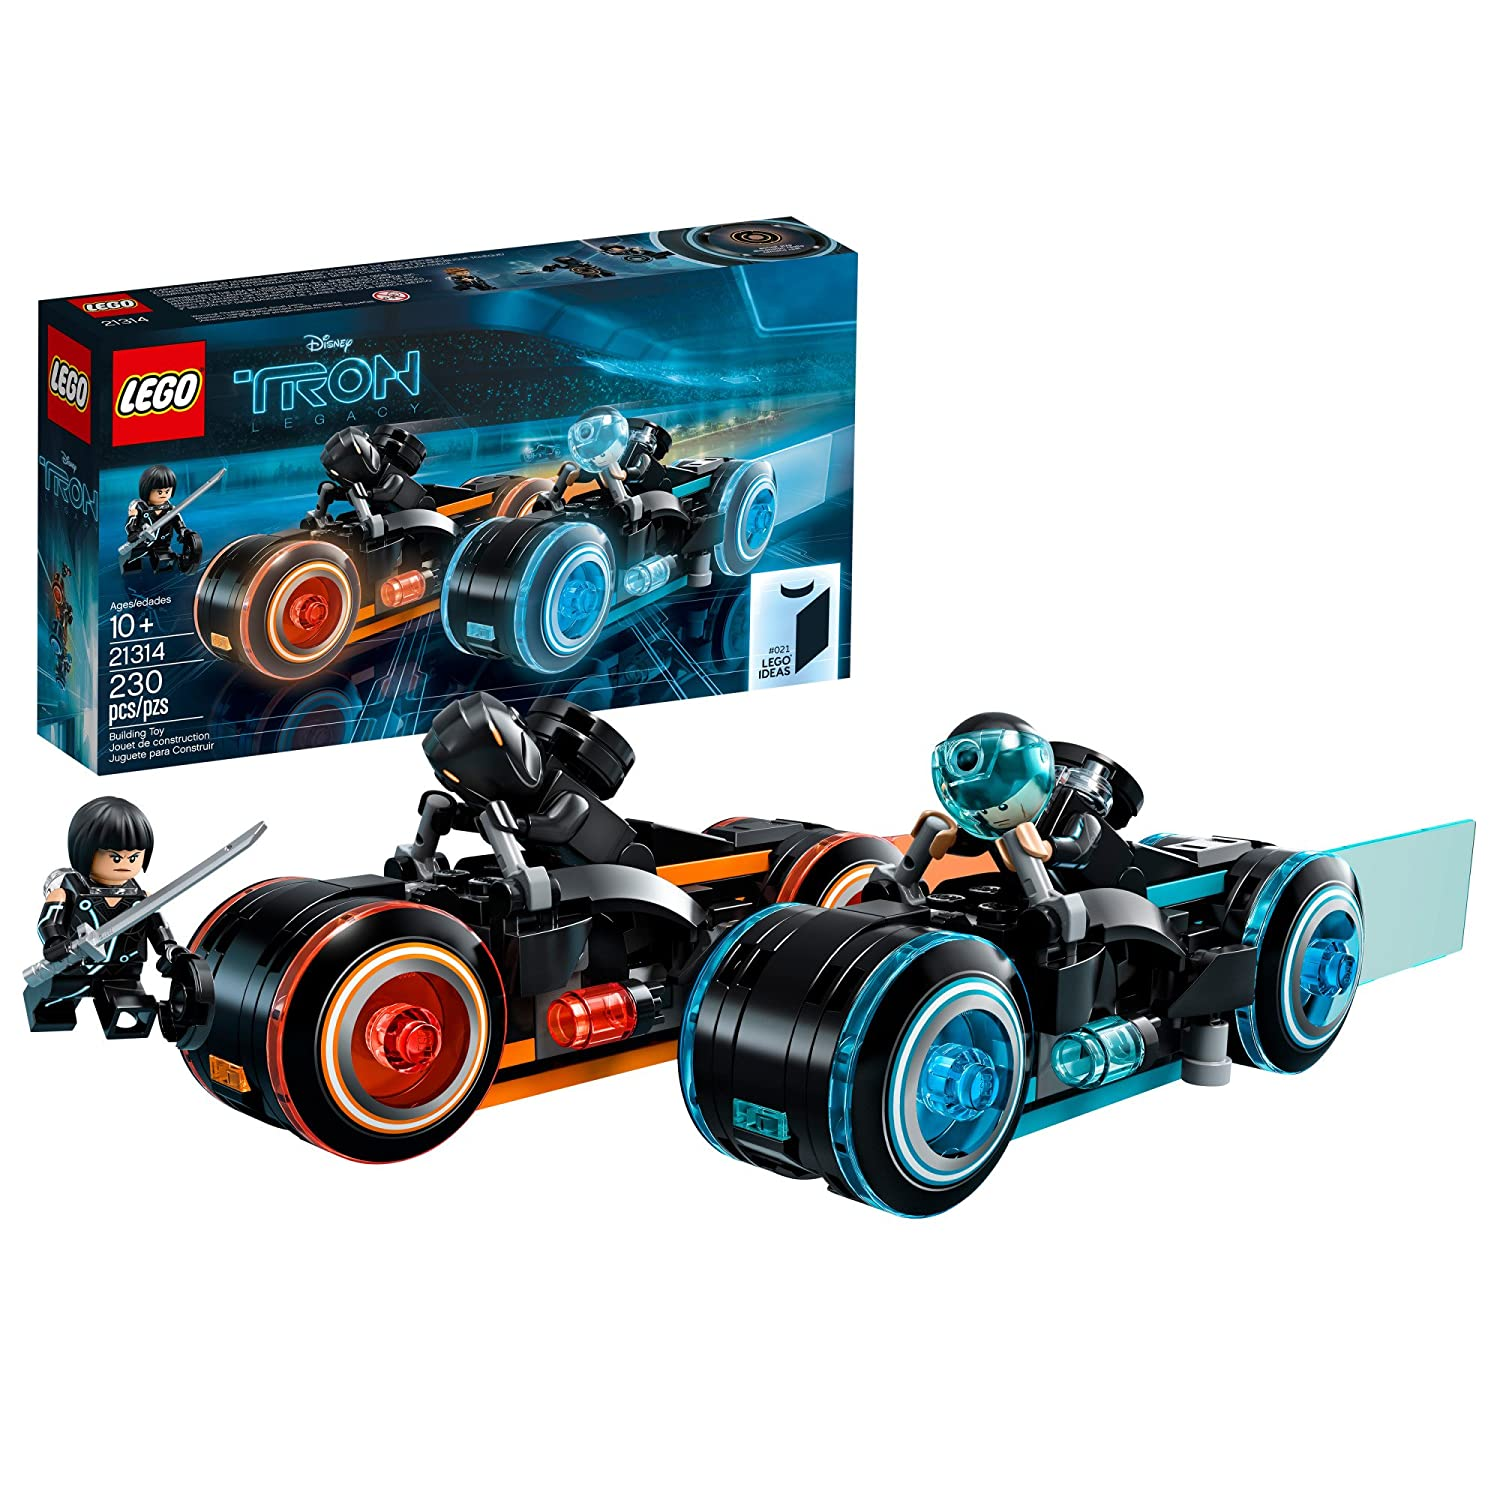 LEGO Ideas TRON: Legacy 21314 Construction Toy Inspired by Disney's TRON: Legacy Movie 6222982